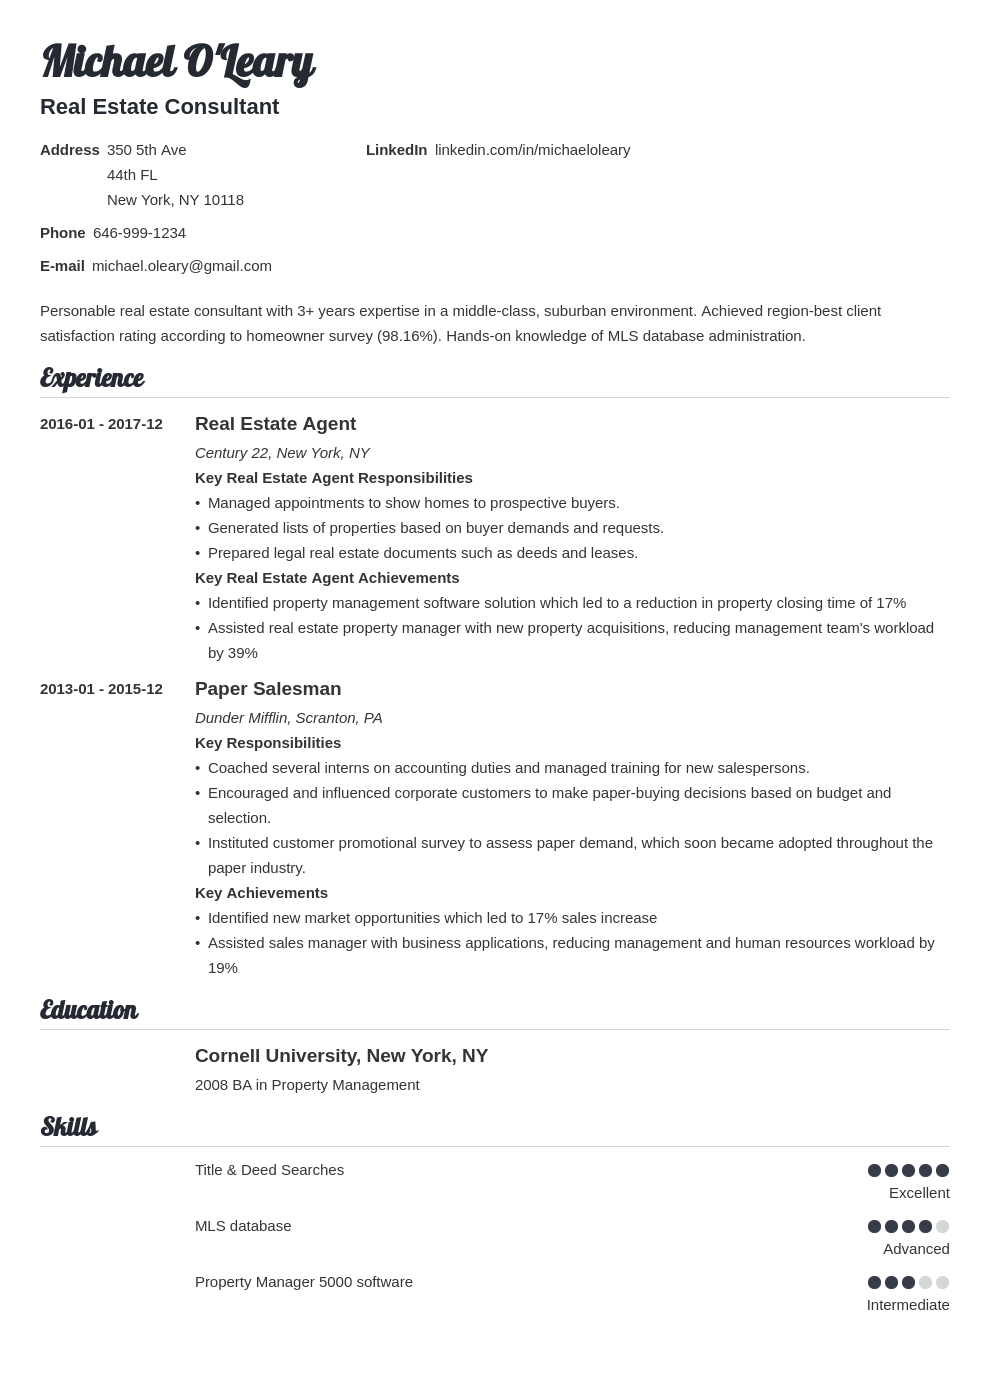 best buy | Job Description and Resume Examples